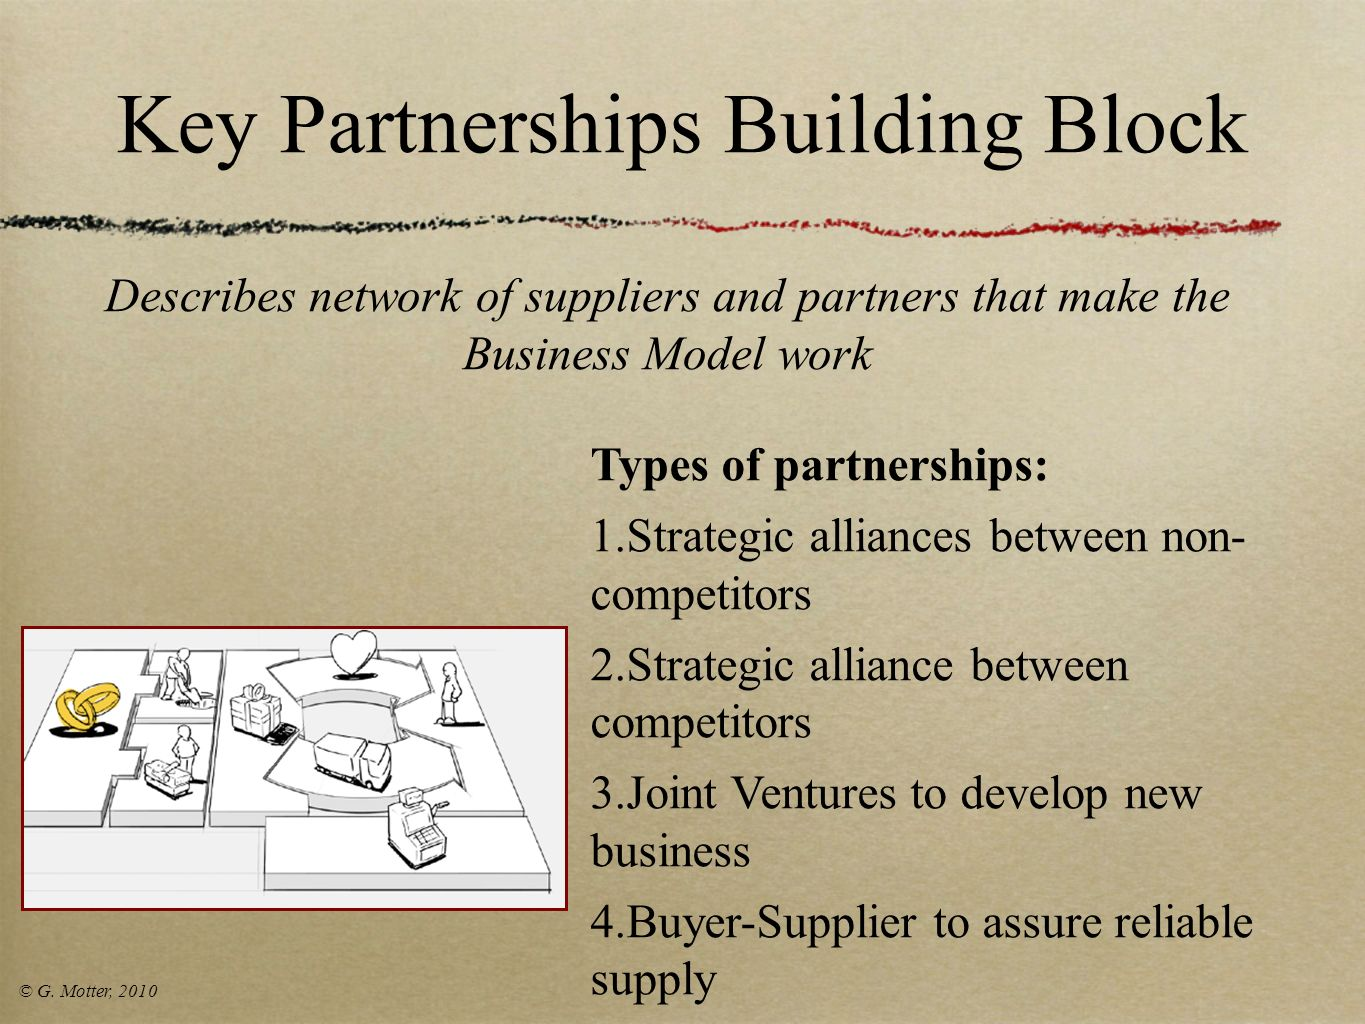 Key Partnerships Building Block